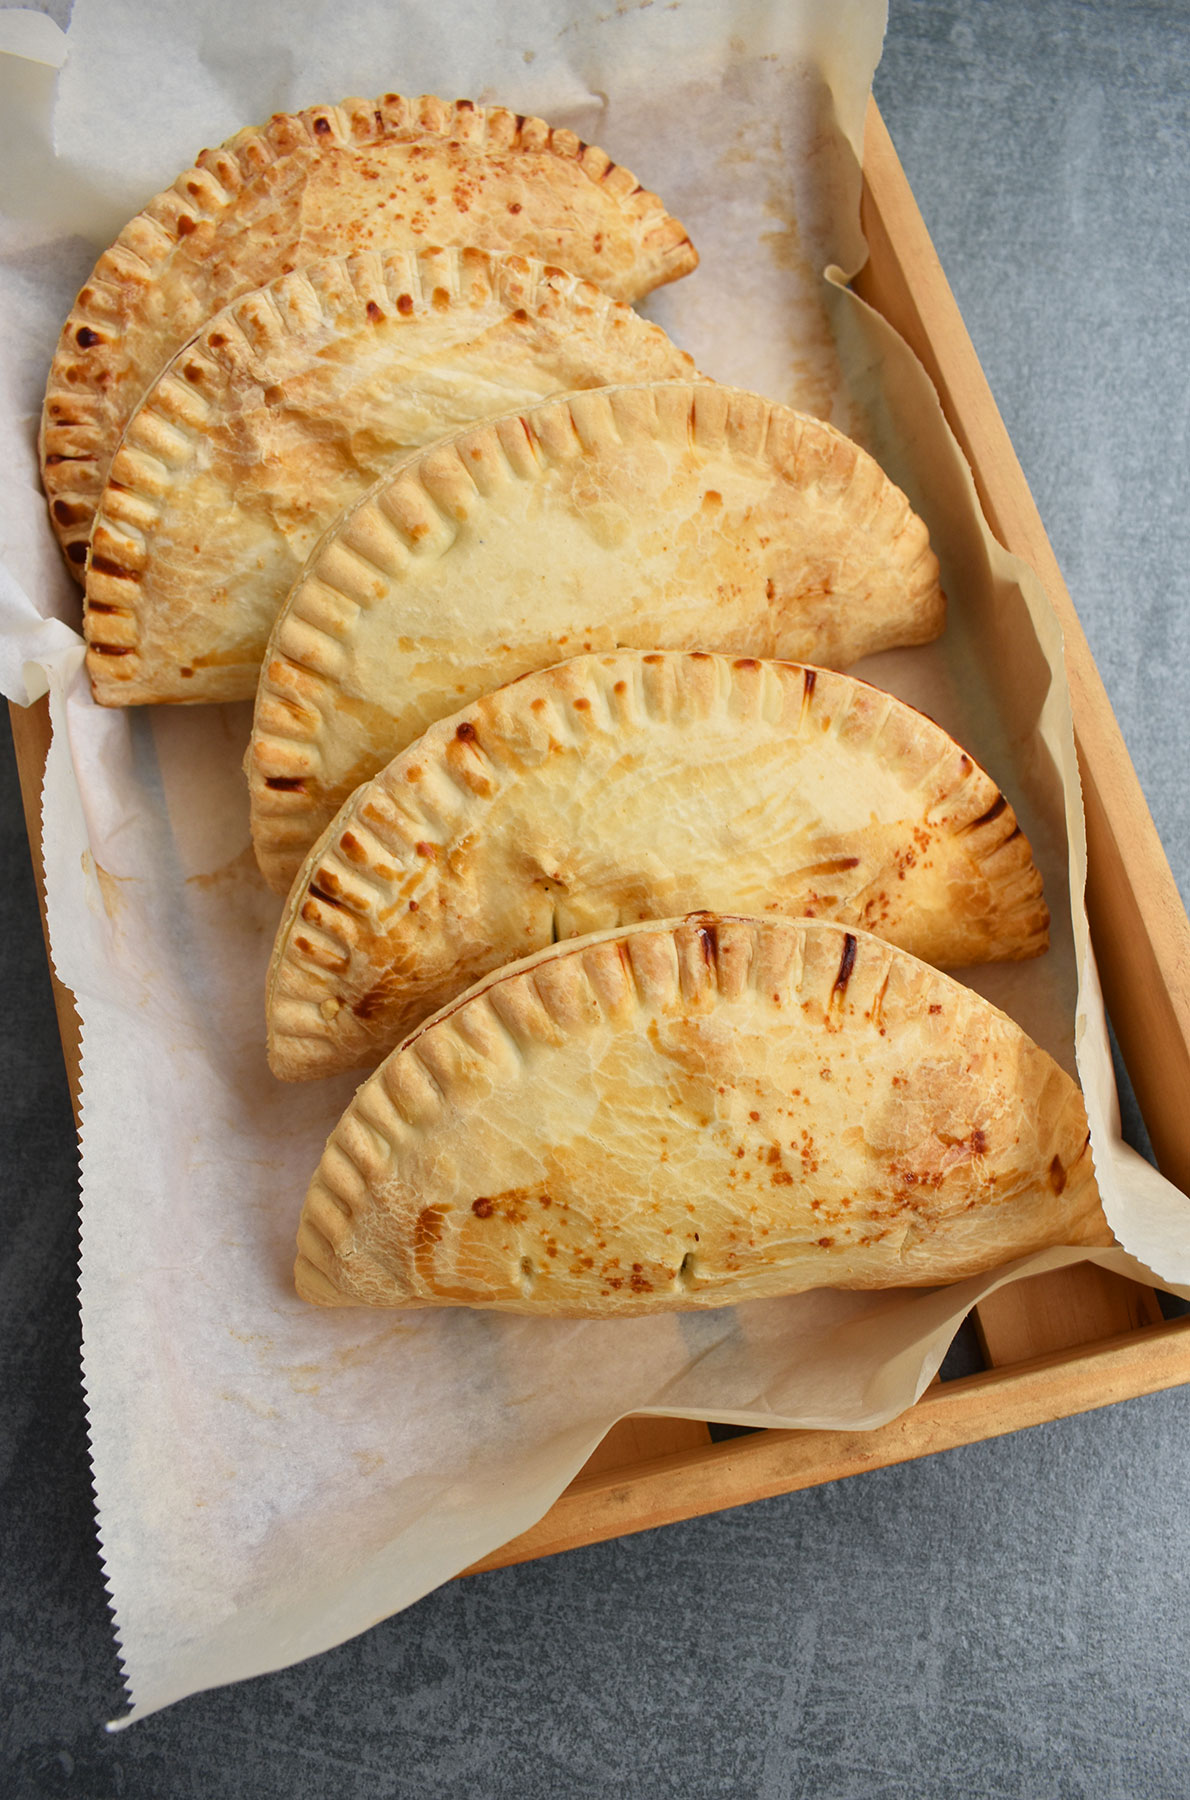 Cheese-and-Onion-Pasty-6.jpg